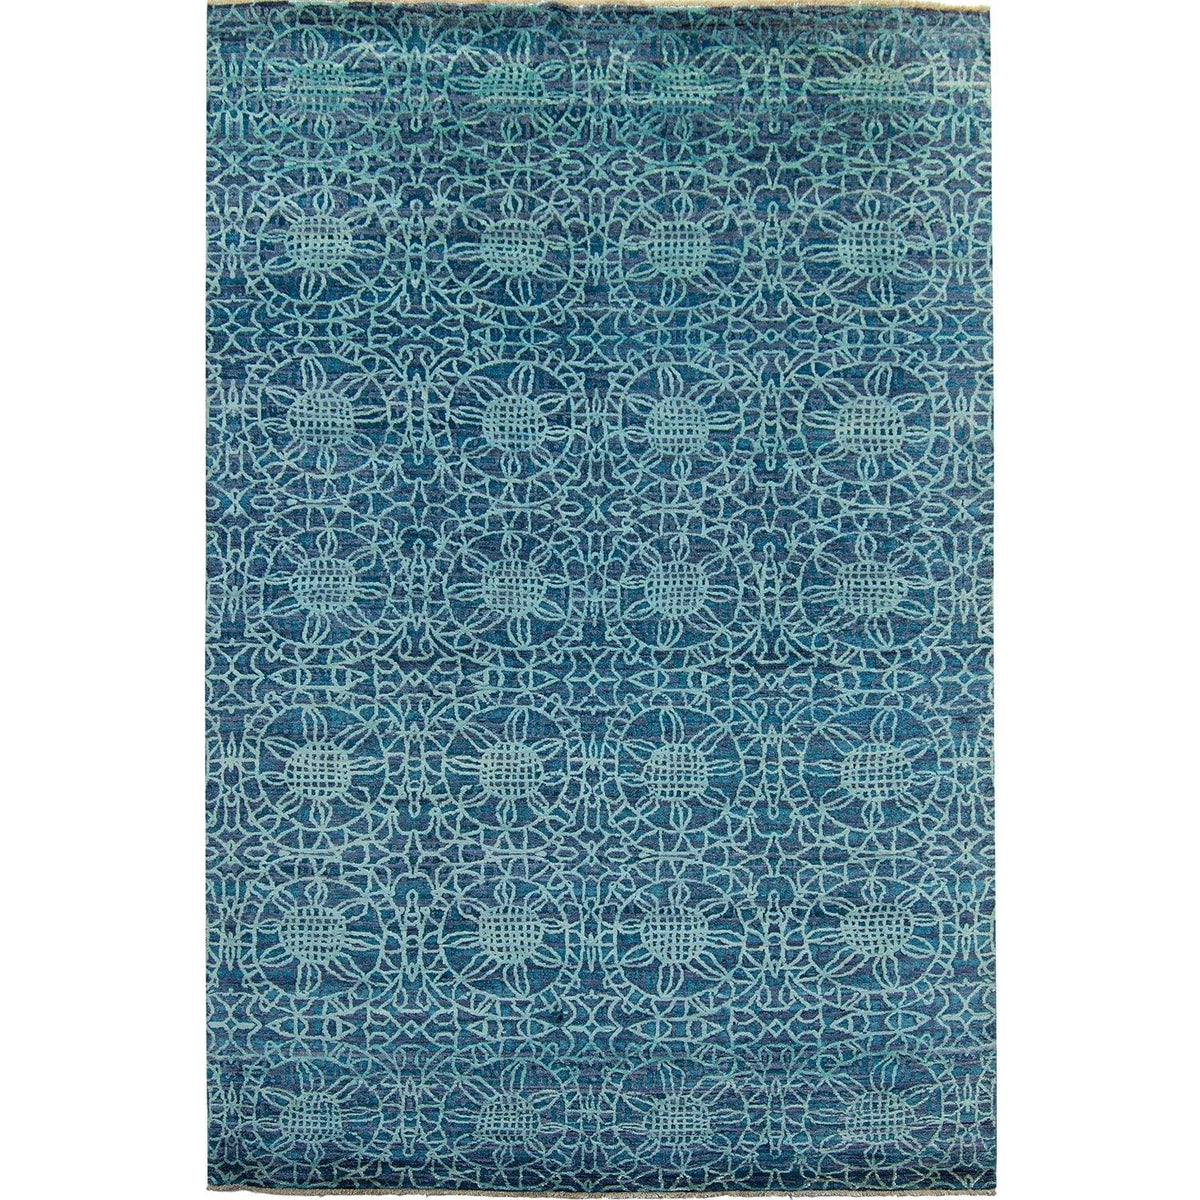 Contemporary Fine Hand-knotted NZ Wool Rug 199cm x 306cm Persian-Rug | House-of-Haghi | NewMarket | Auckland | NZ | Handmade Persian Rugs | Hand Knotted Persian Rugs